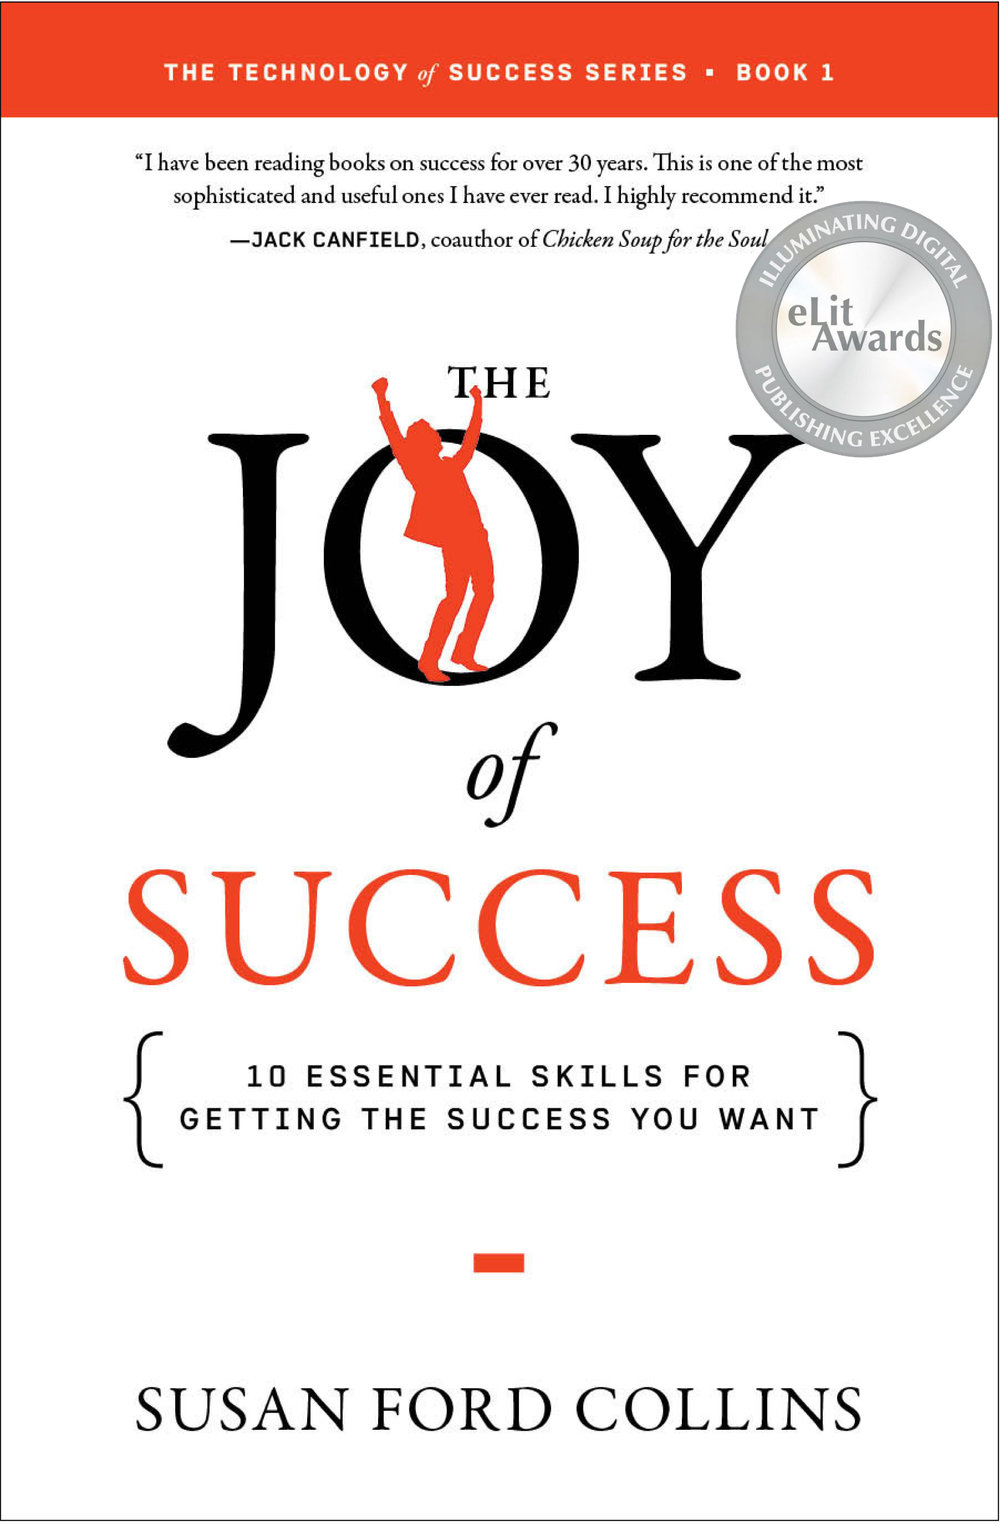 The Joy of Success by Susan Ford Collins